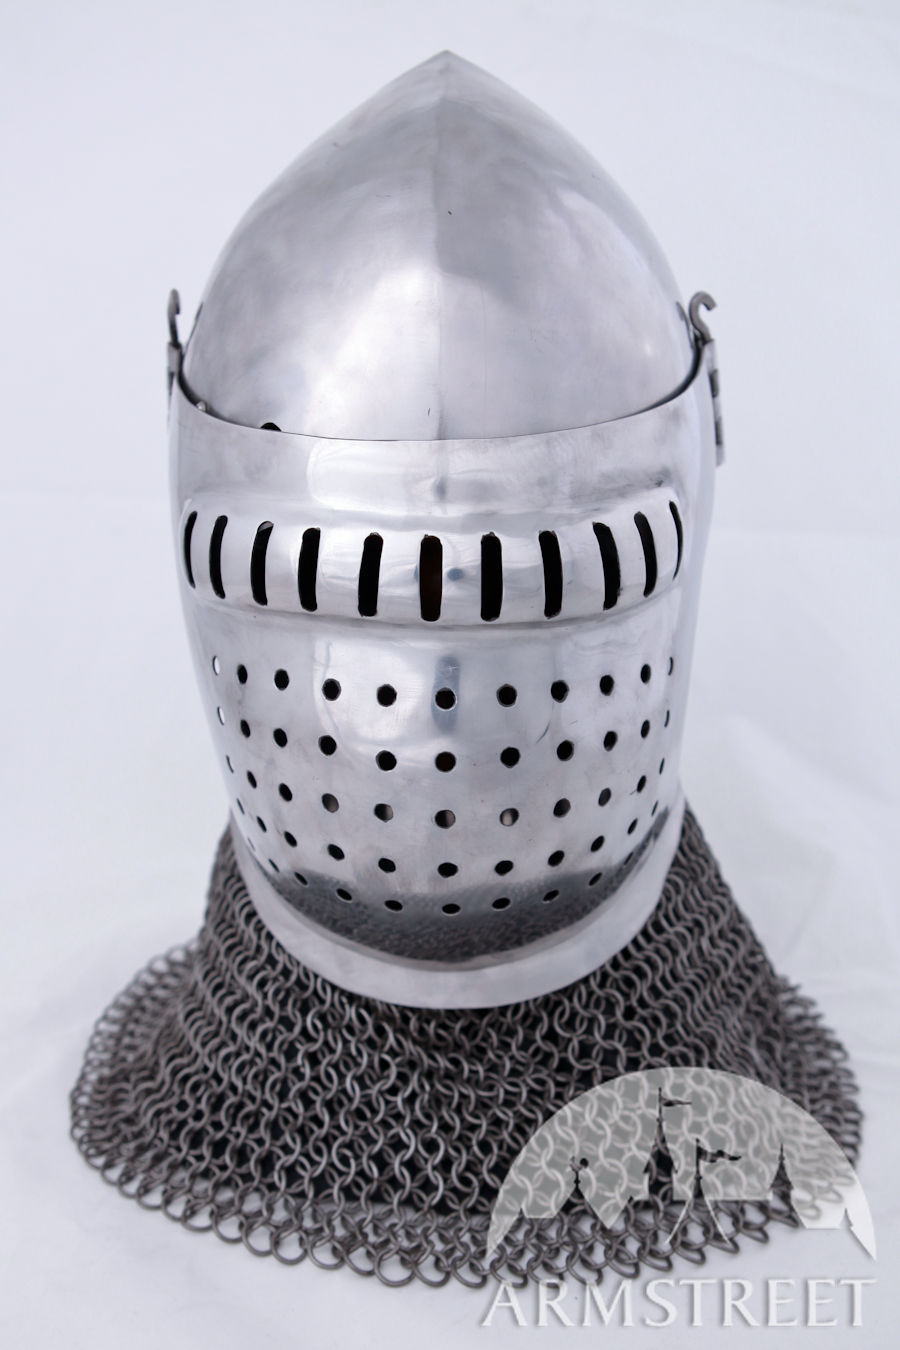 Grand Bascinet Helm Fighting Version